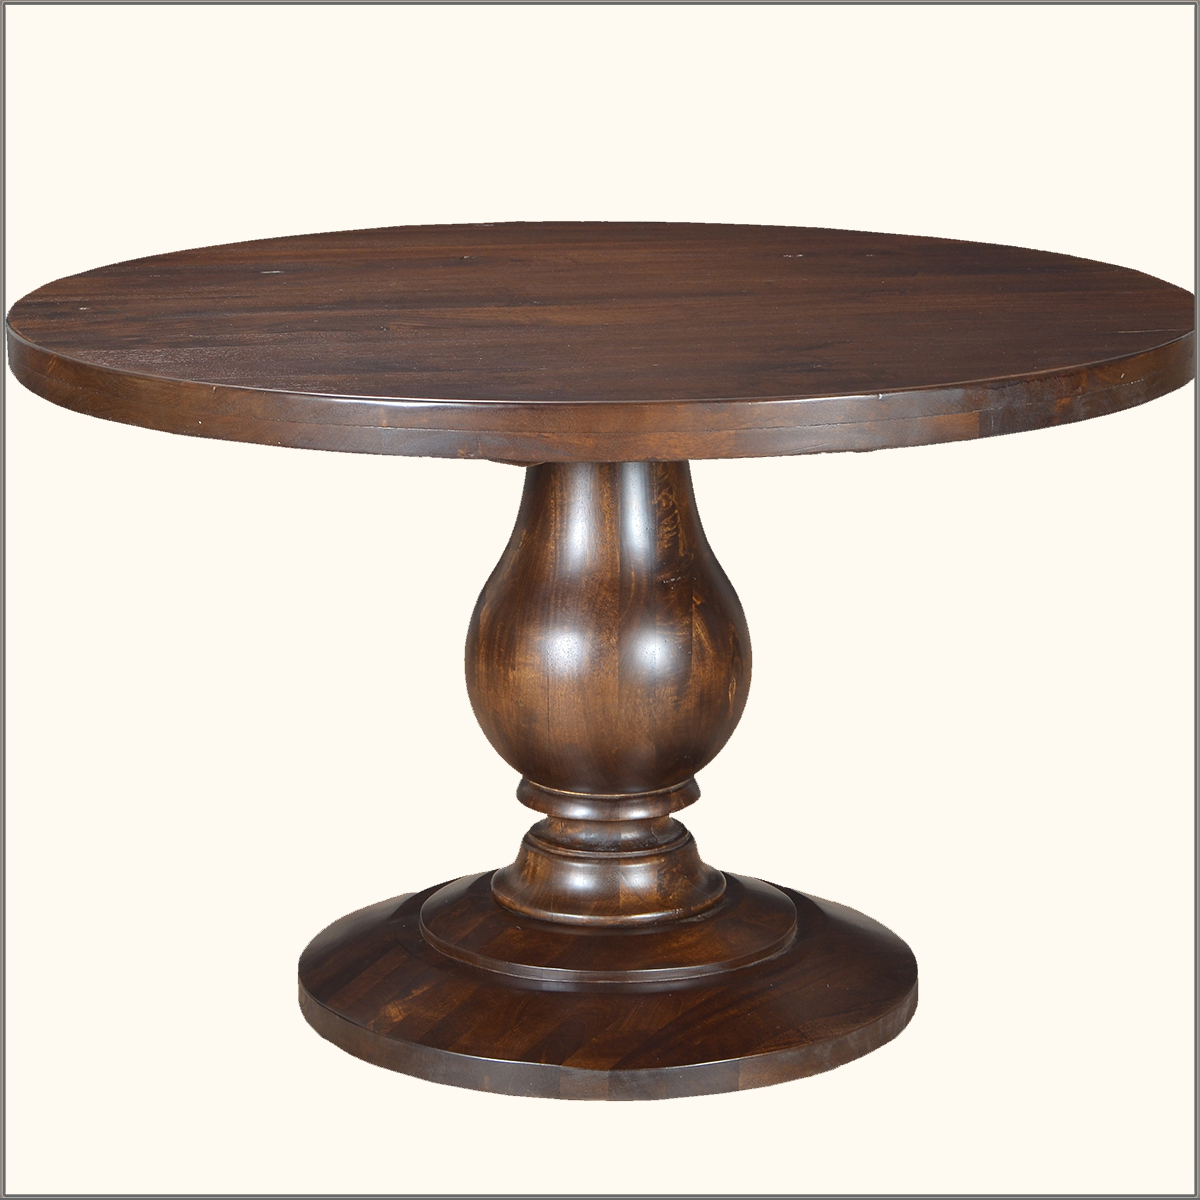 Rustic baluster solid wood round pedestal dining table for Solid wood round tables dining